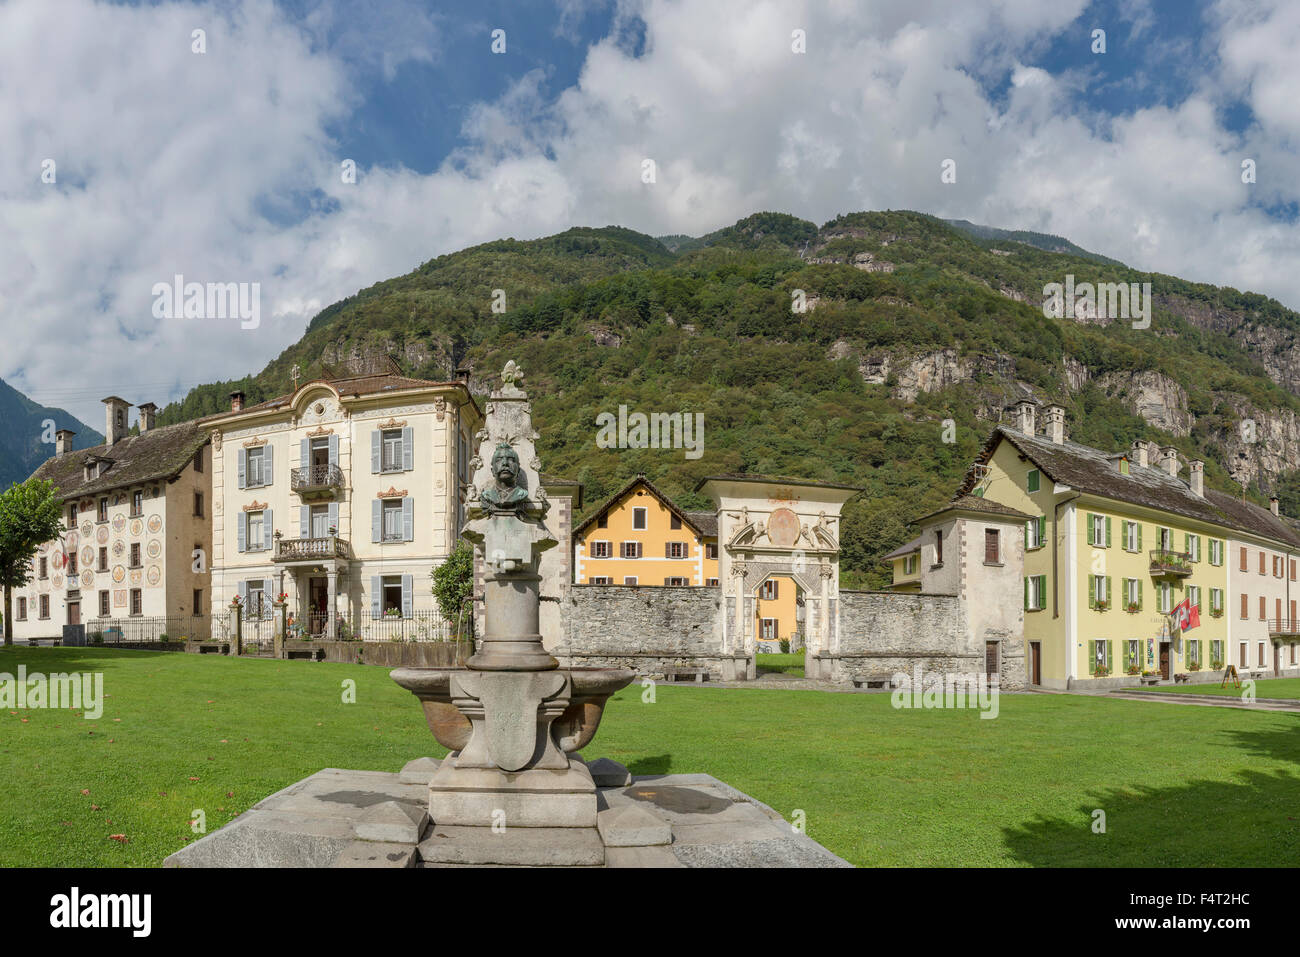 Switzerland, Europe, Cevio, Ticino, Lawn, square, well, Maggia valley, city, village, field, meadow, summer, mountains, - Stock Image